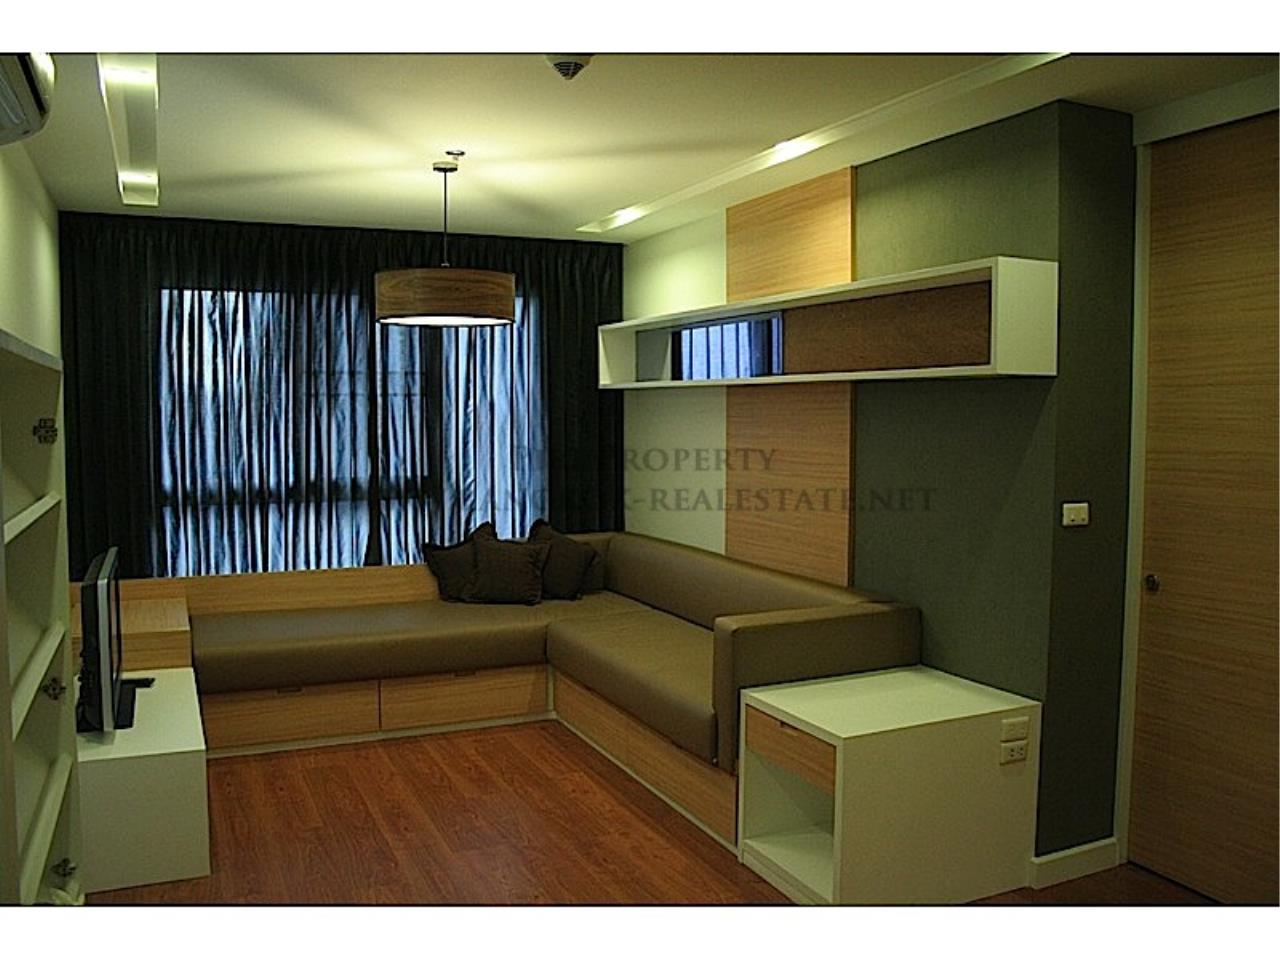 Piri Property Agency's Nicely Furnished One Bedroom Unit - Condo One X 8